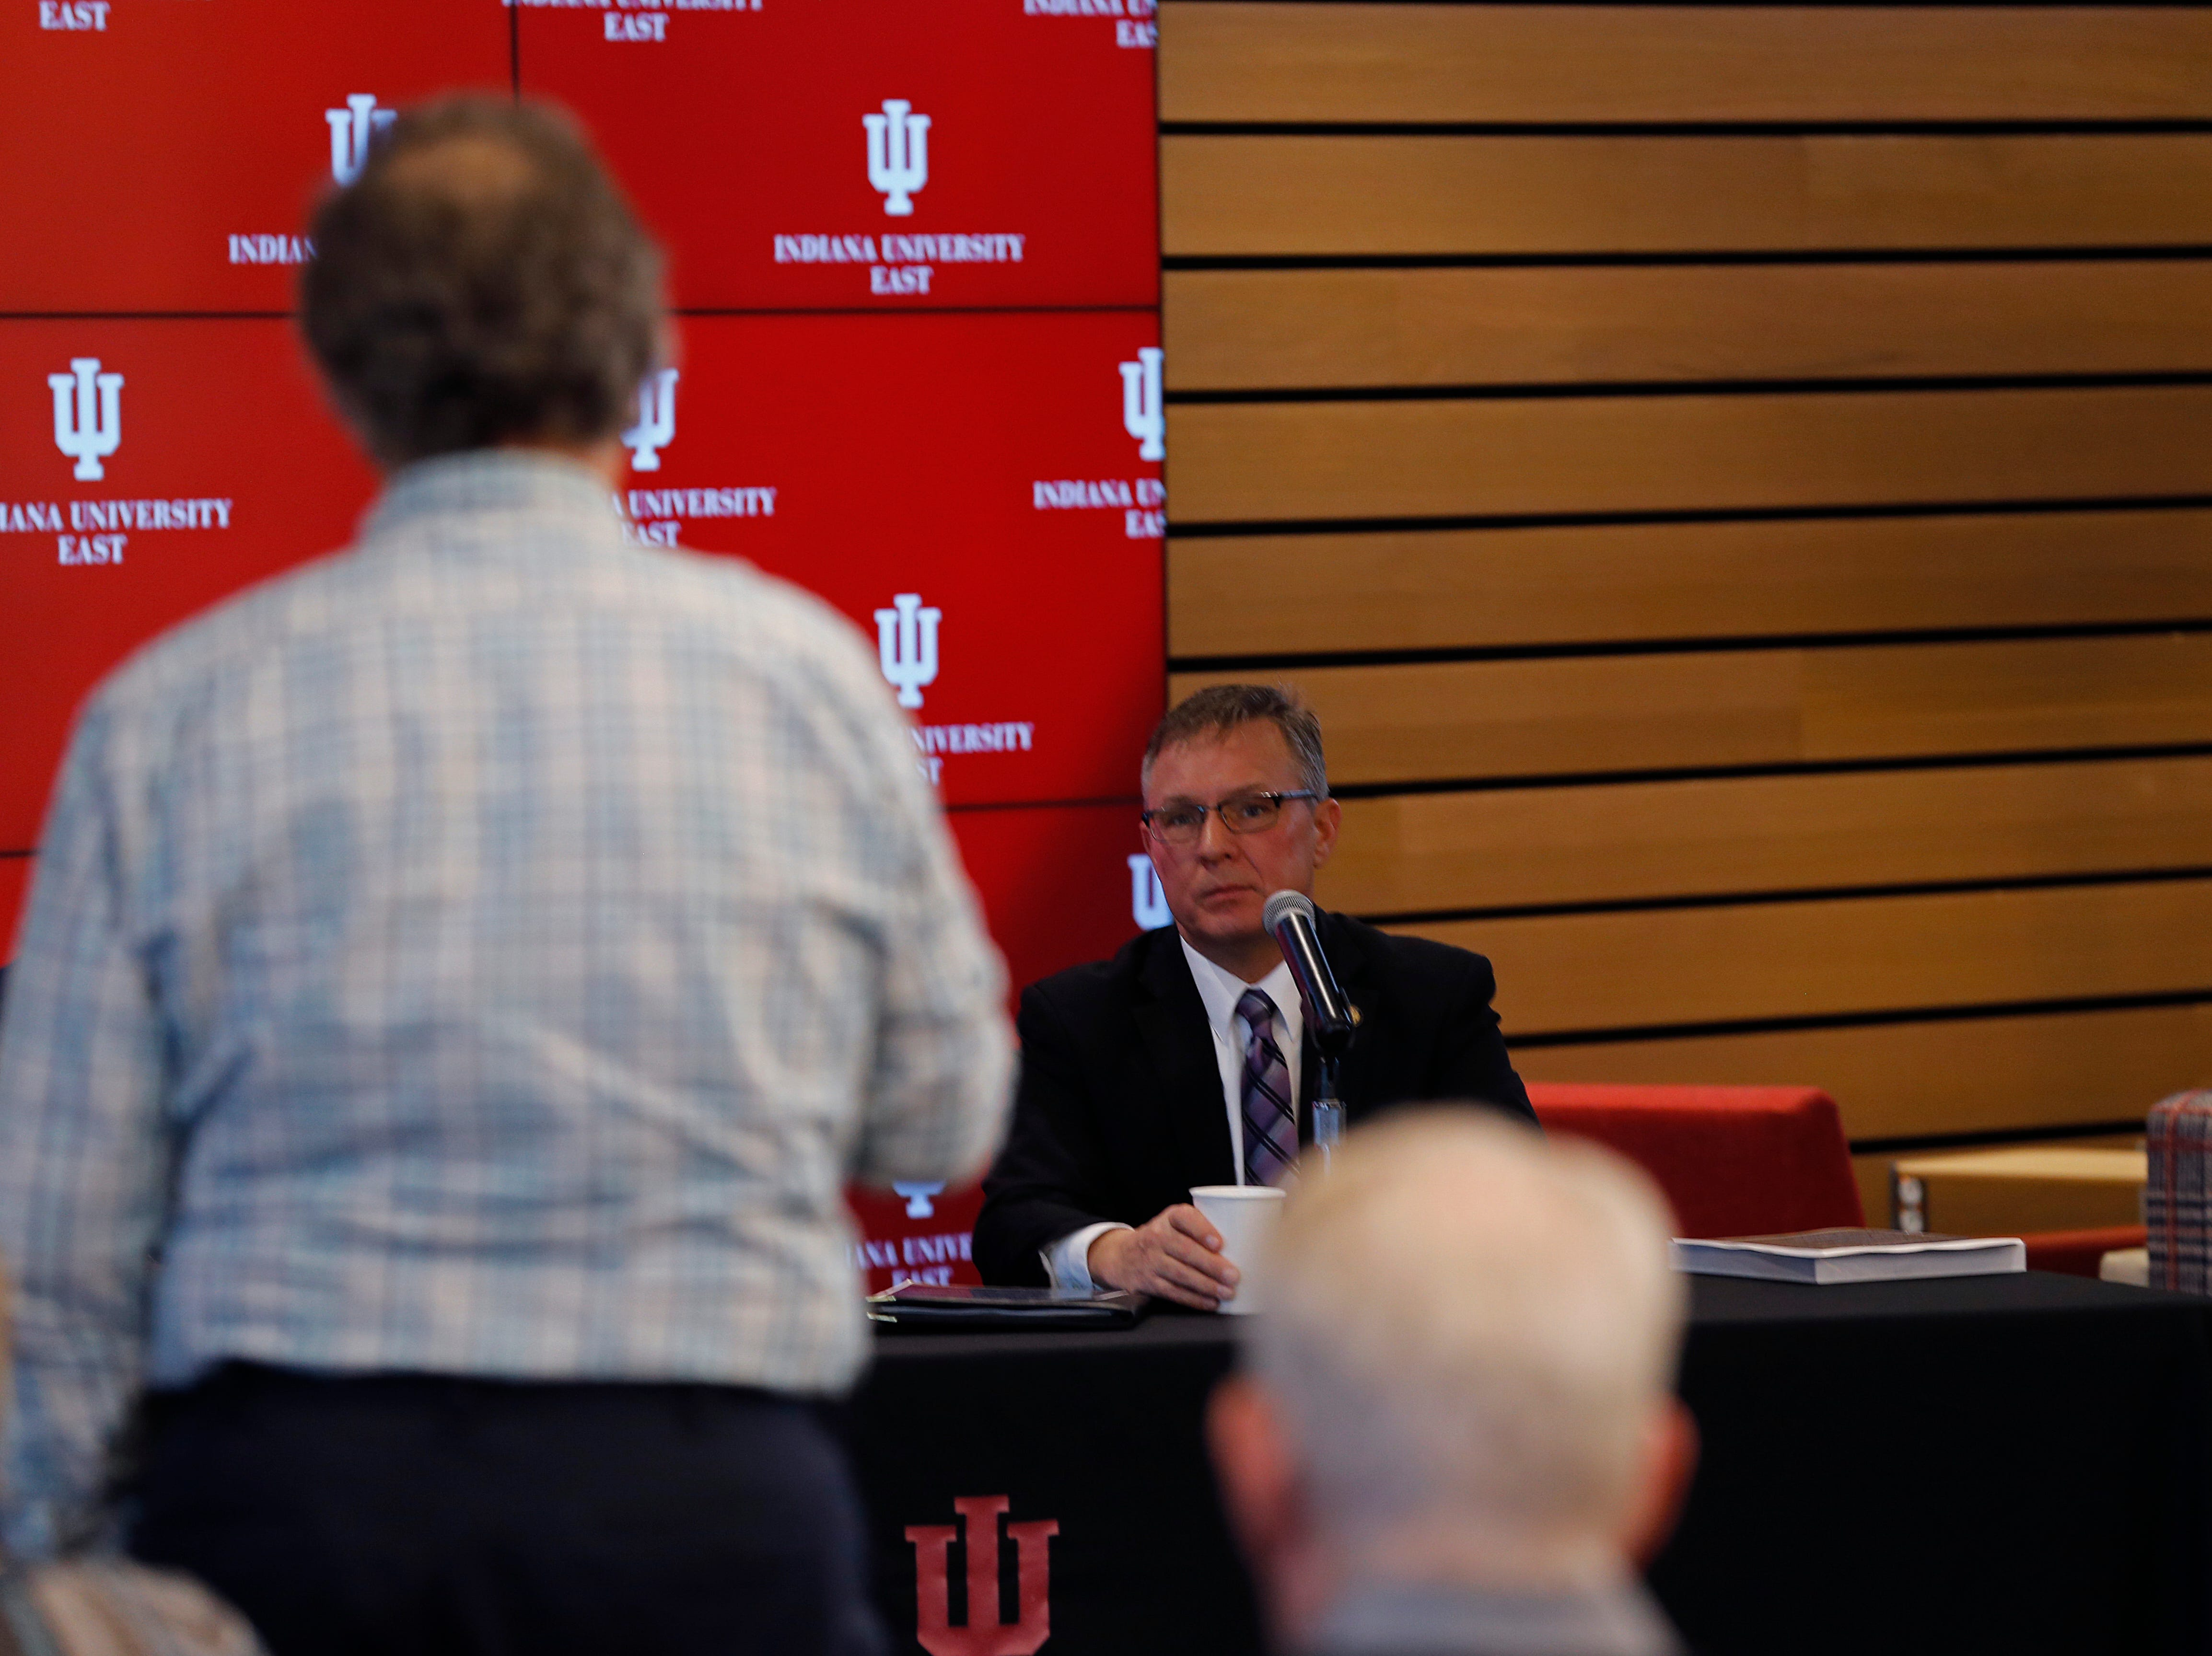 State Sen. Jeff Raatz listens to an audience member's question during the Legislative Forum event on Friday, March 22, 2019, at IU East in Richmond.